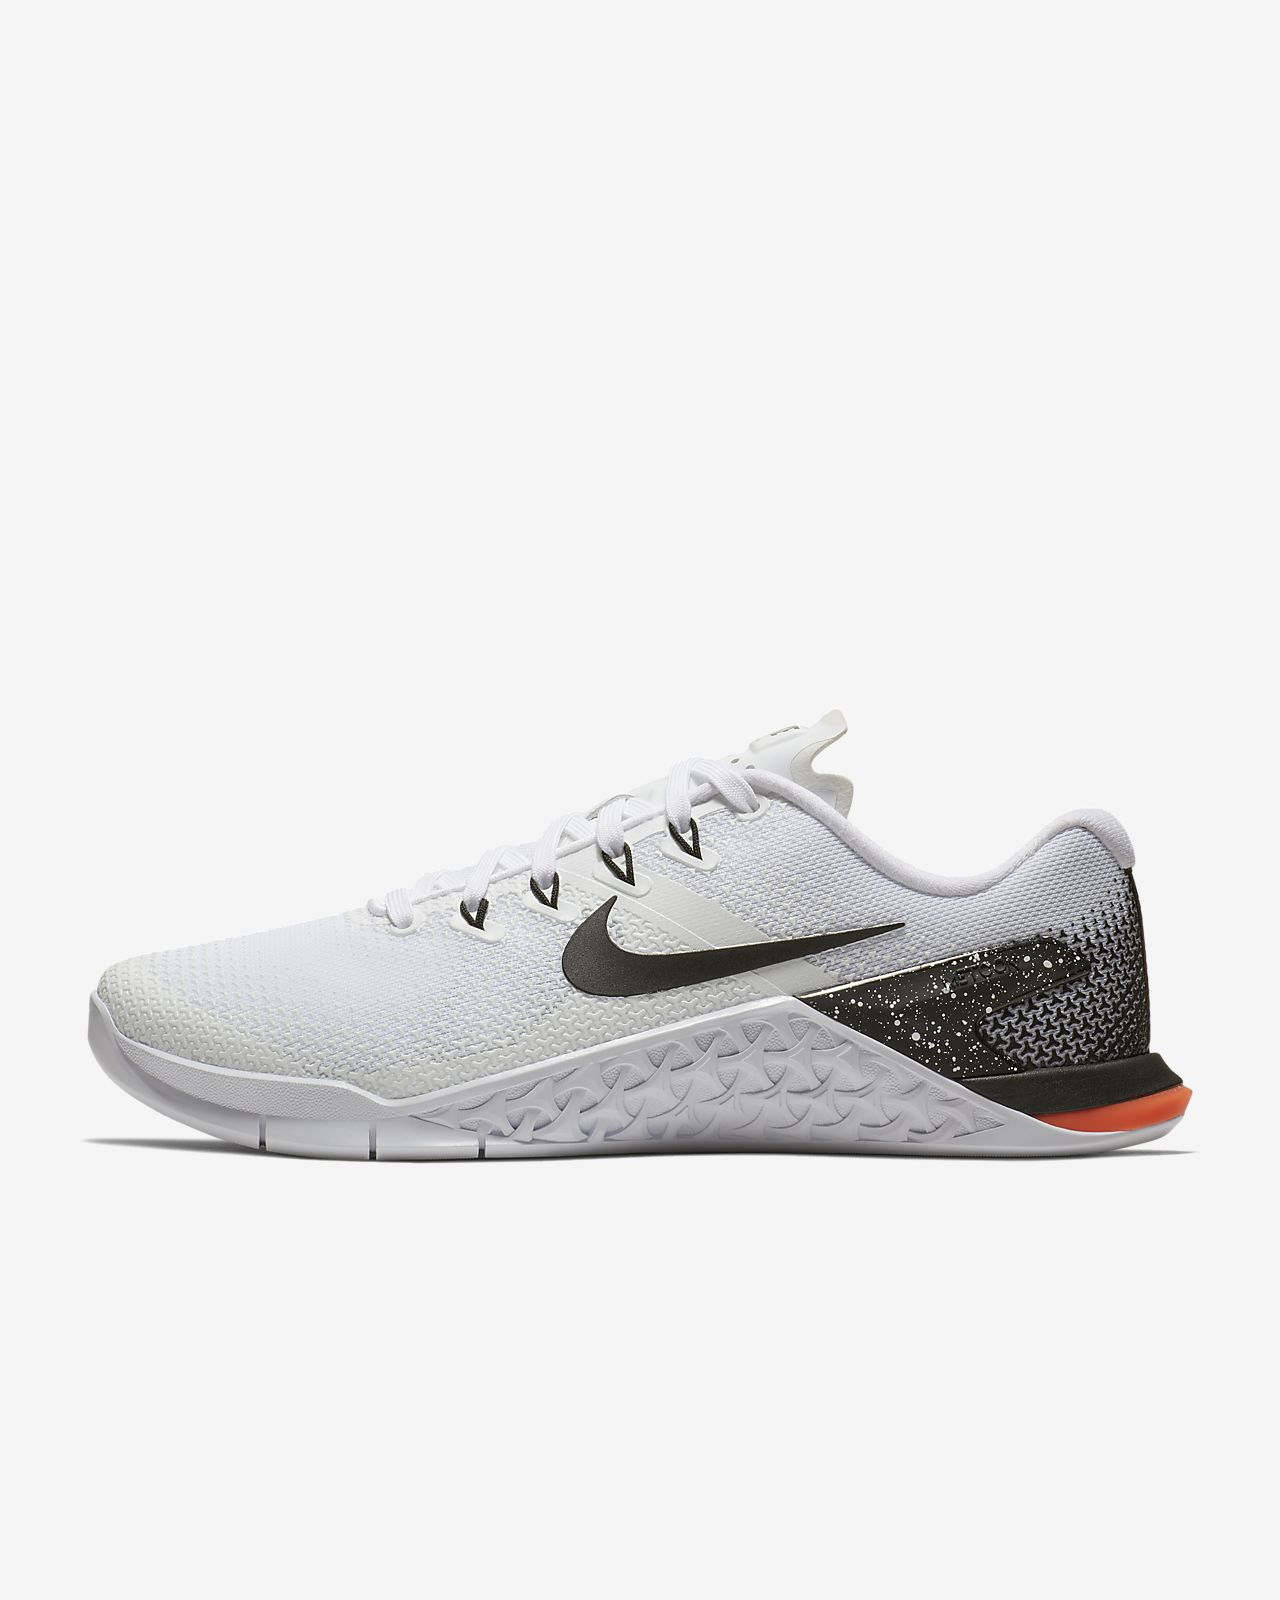 Women s Cross Training Weightlifting Shoe. Nike Metcon 4 b0a9569af